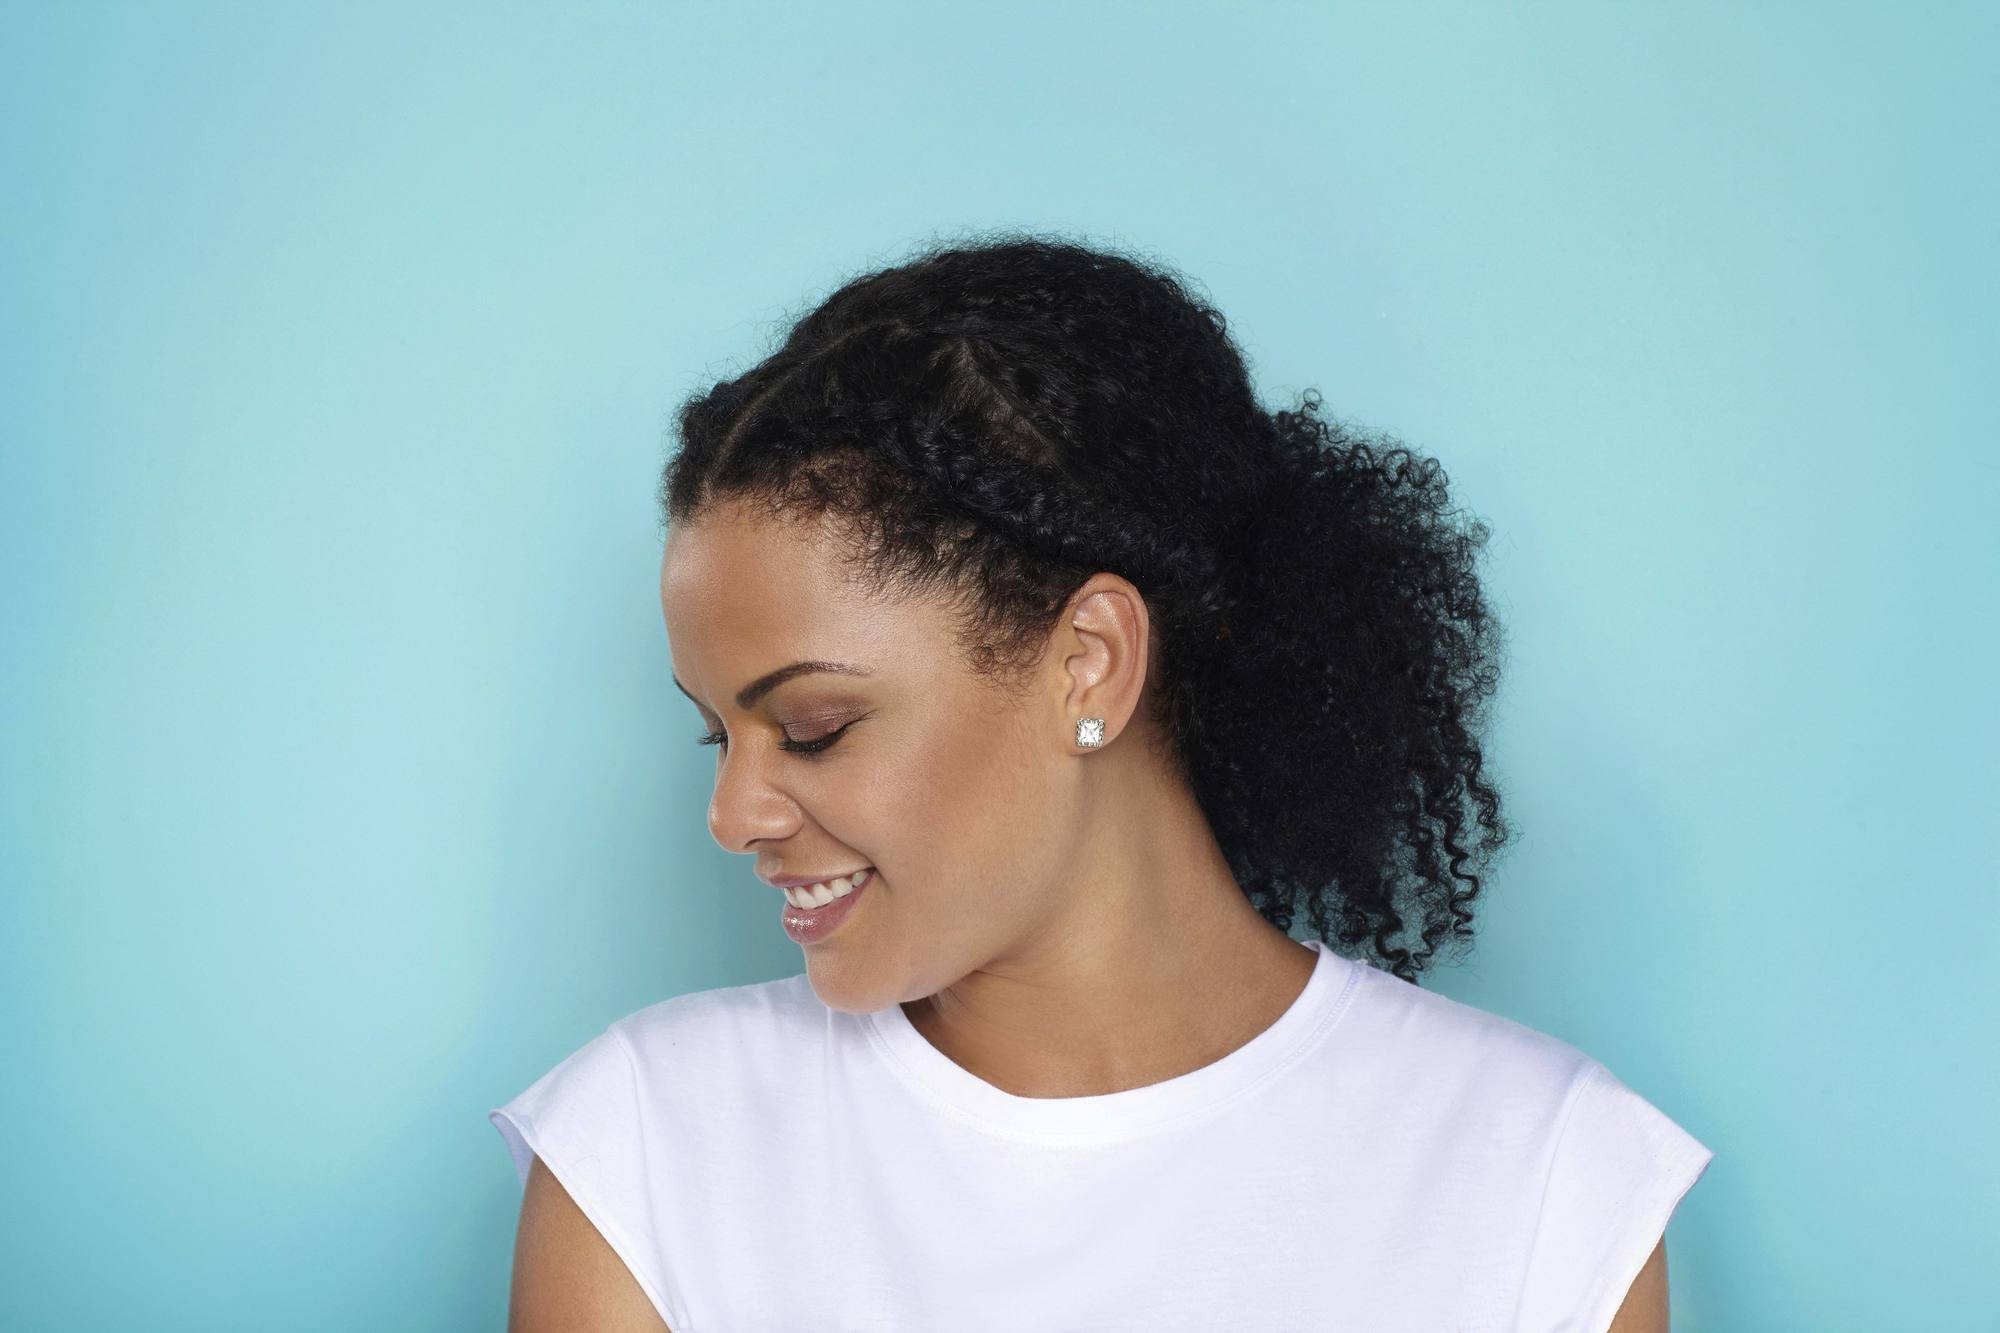 after-party hairstyles included braided low ponytail looks.